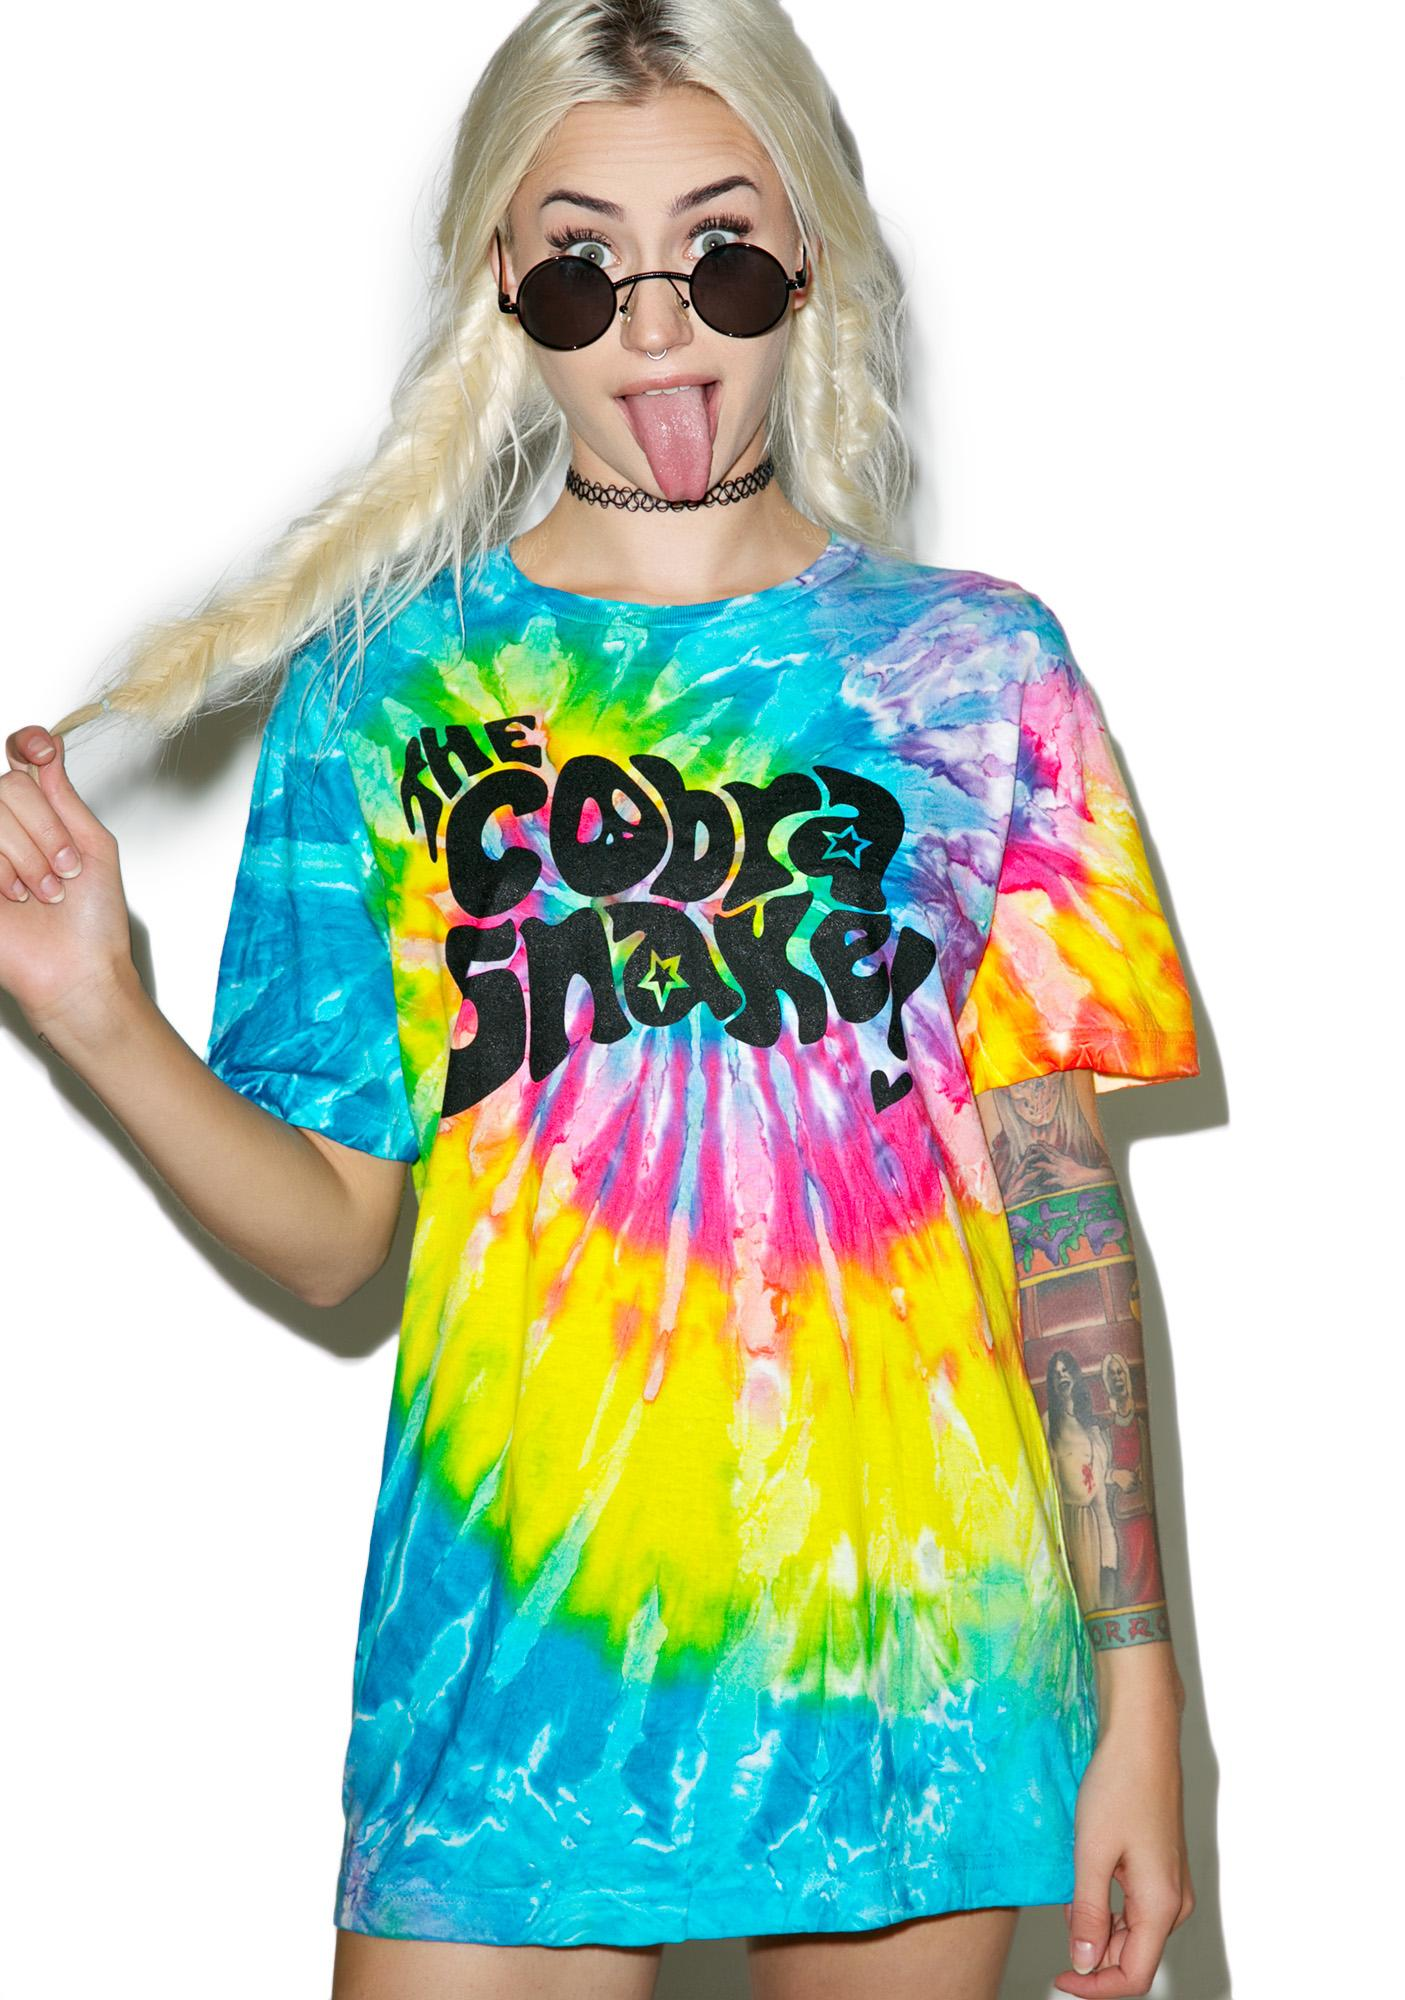 The Cobra Snake Hippie Vibes 2.0 Tee